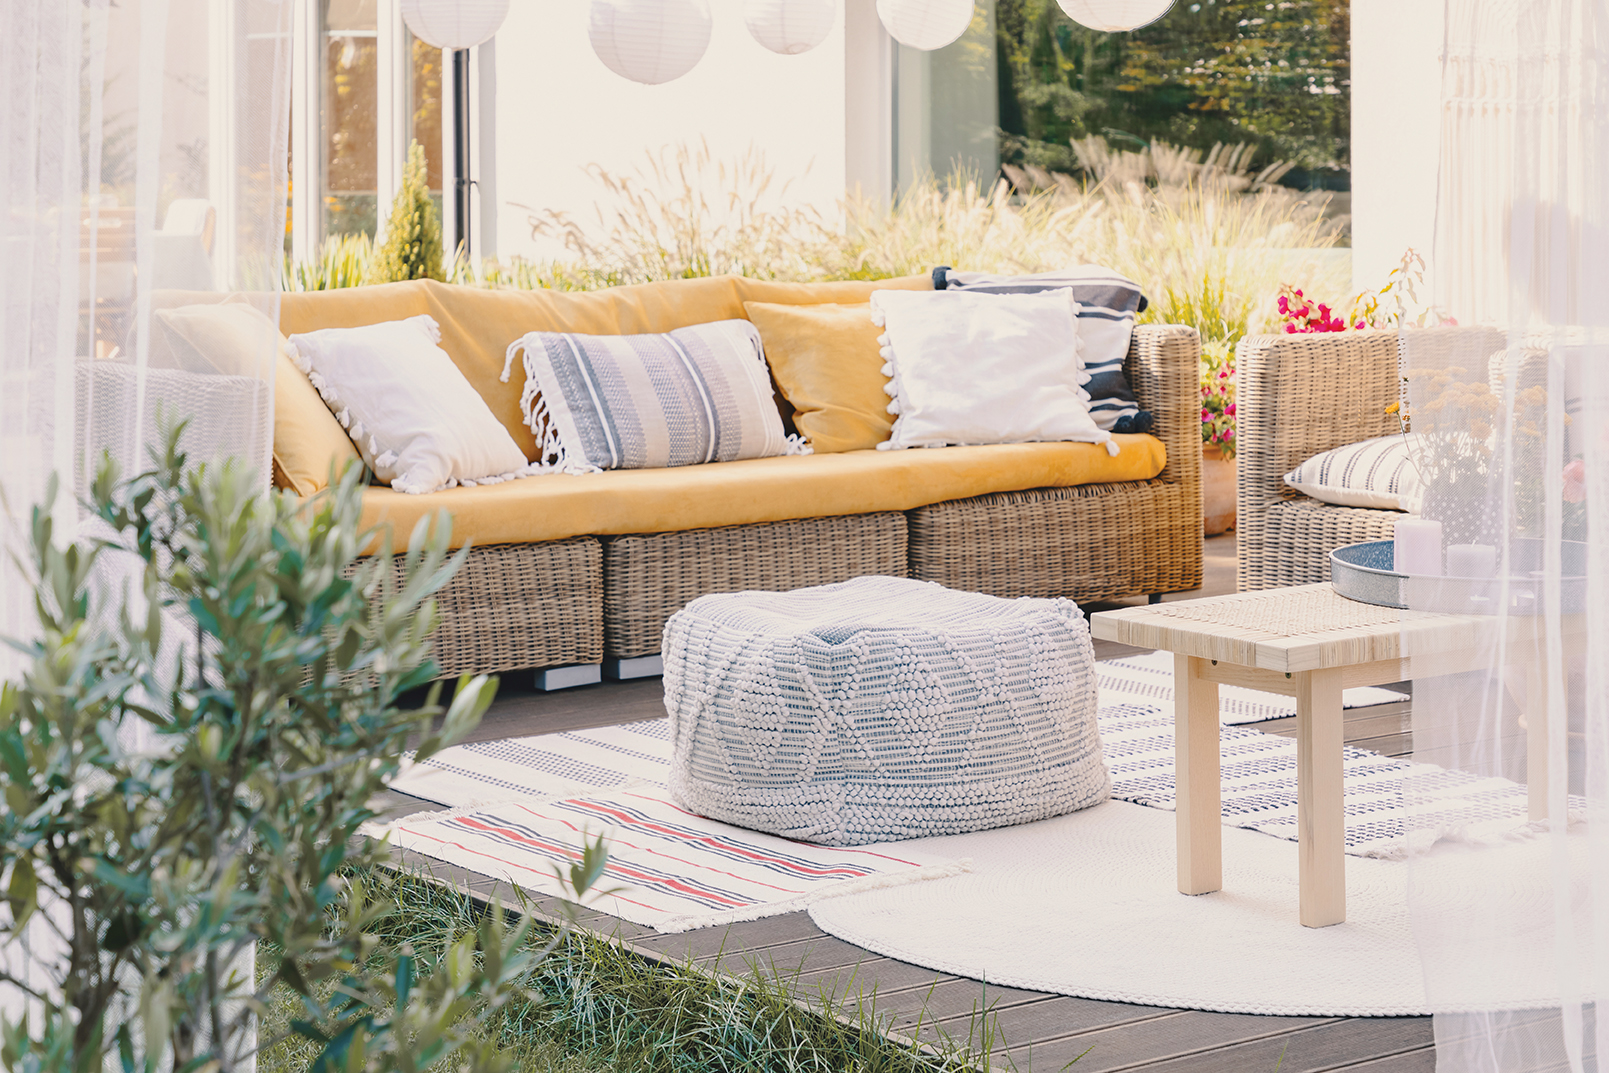 Create defined seating areas for you and your guests. This facilitates conversation and creates attractive outdoor areas. Treat your outside space like the inside of your home and use rugs and drapes to dress up your patio or deck. You can also bring indoor furniture out if you find you need more seating options the day of the party.